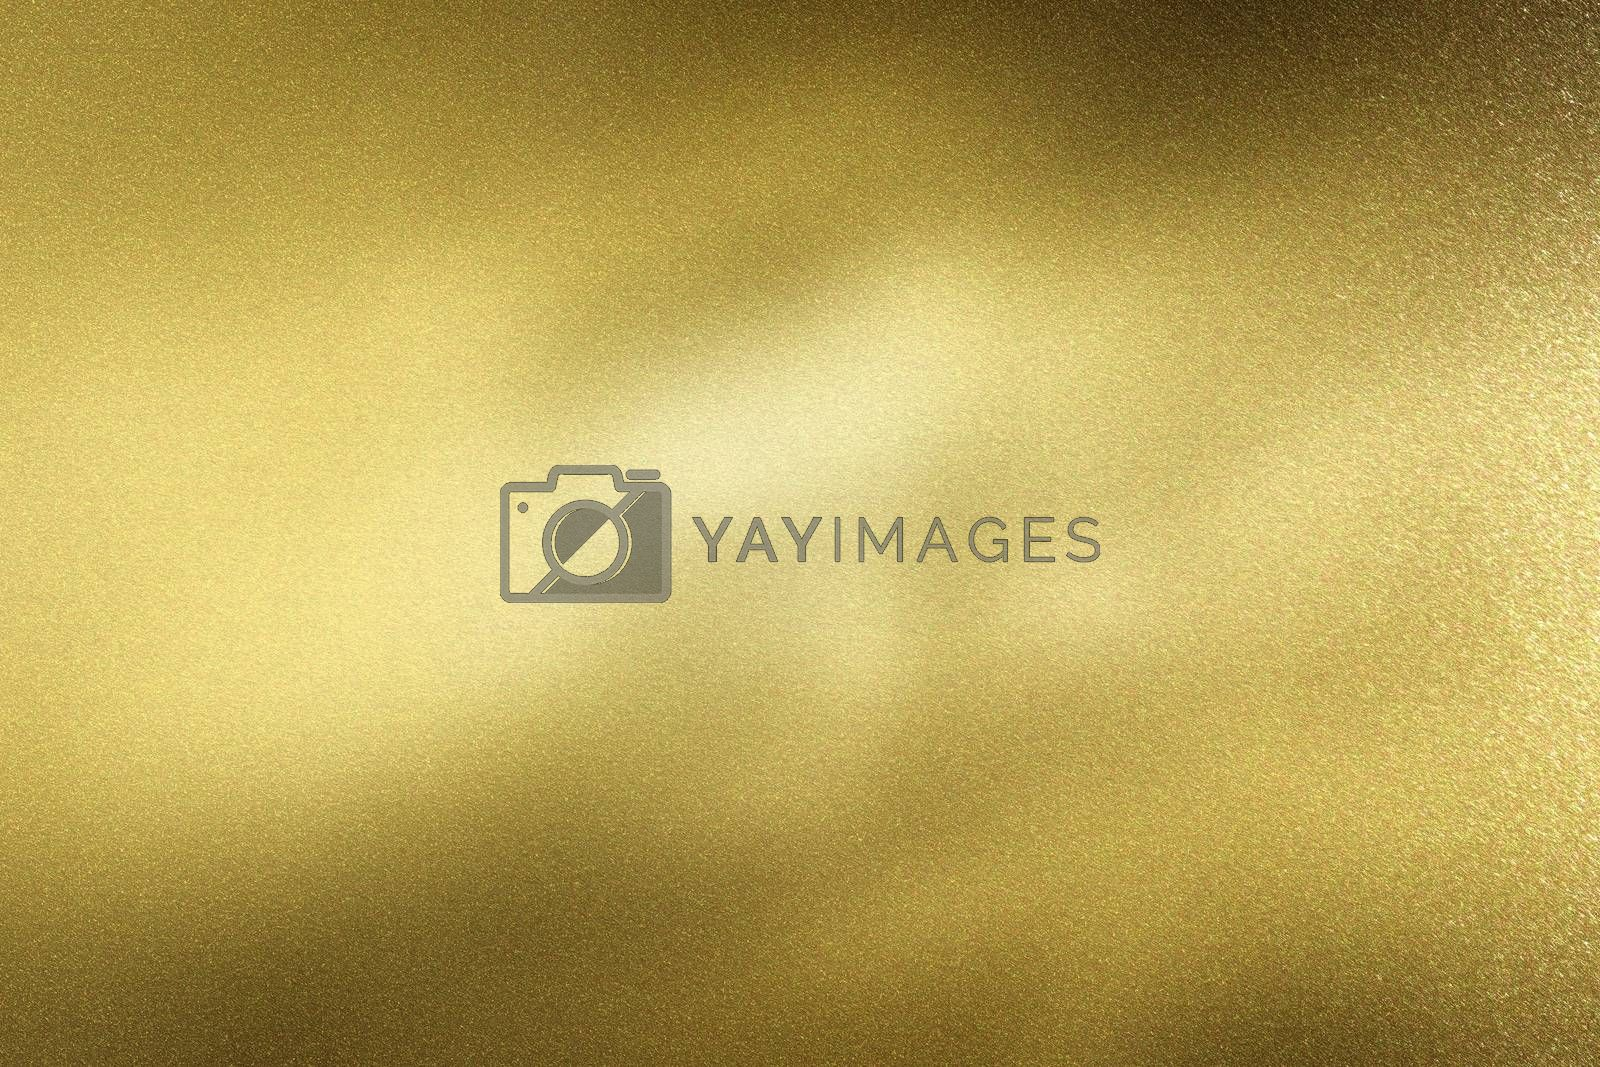 Light shining on gold metal sheet, abstract texture background by mouu007